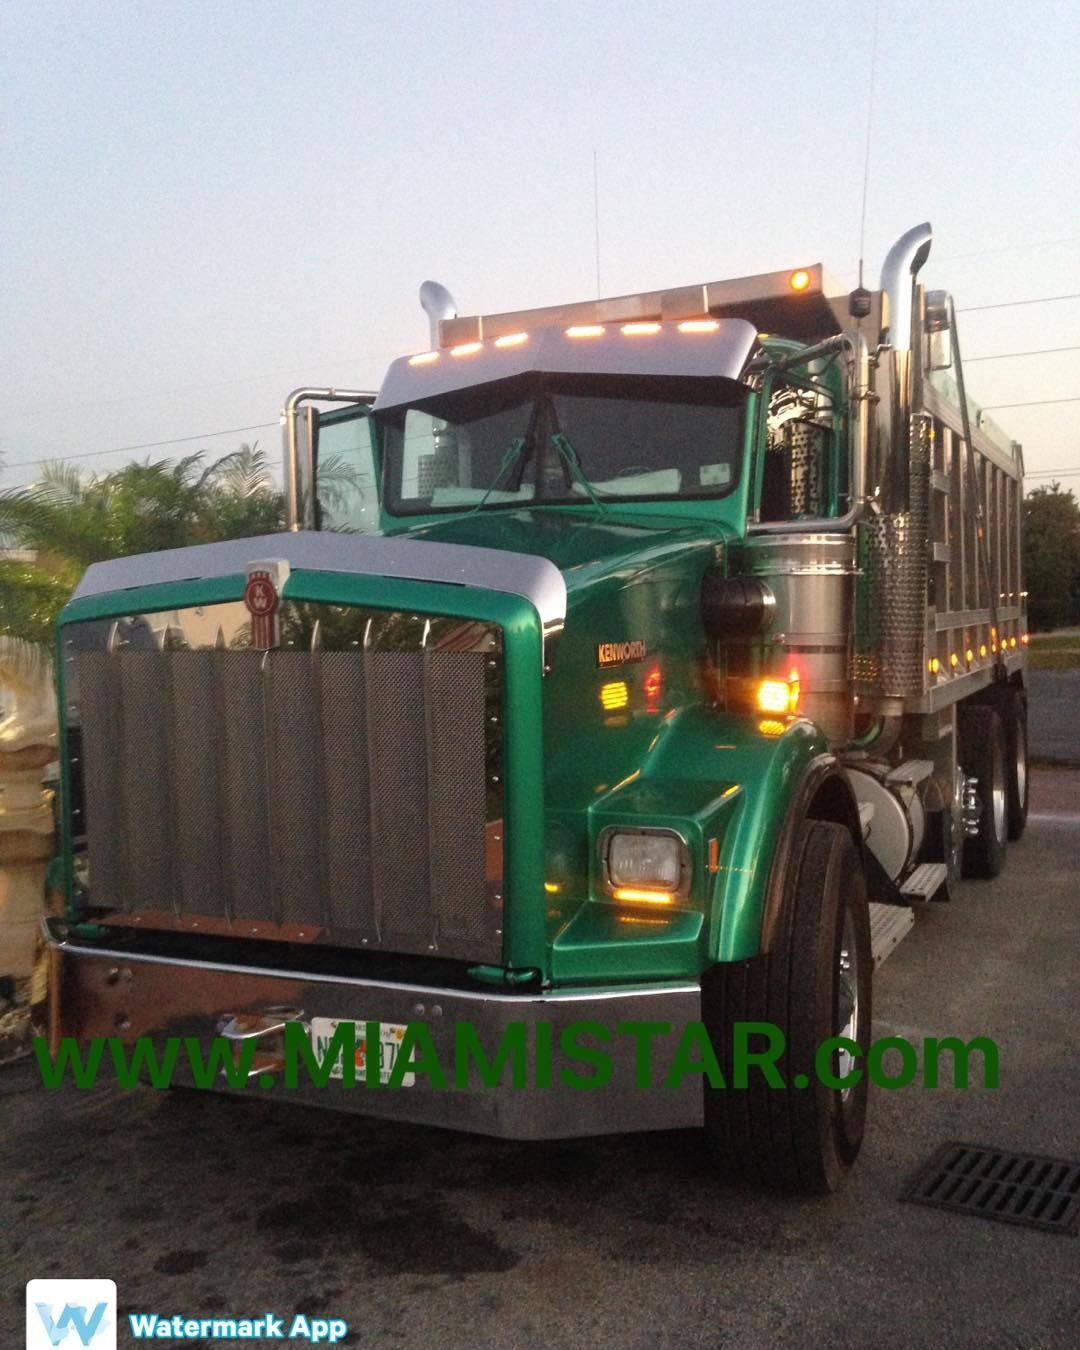 medium resolution of  kenworth t800 wide grille greenmachine dump truck chrome parts accessories led trucking worktruck custom kwopper miami usa miamistar